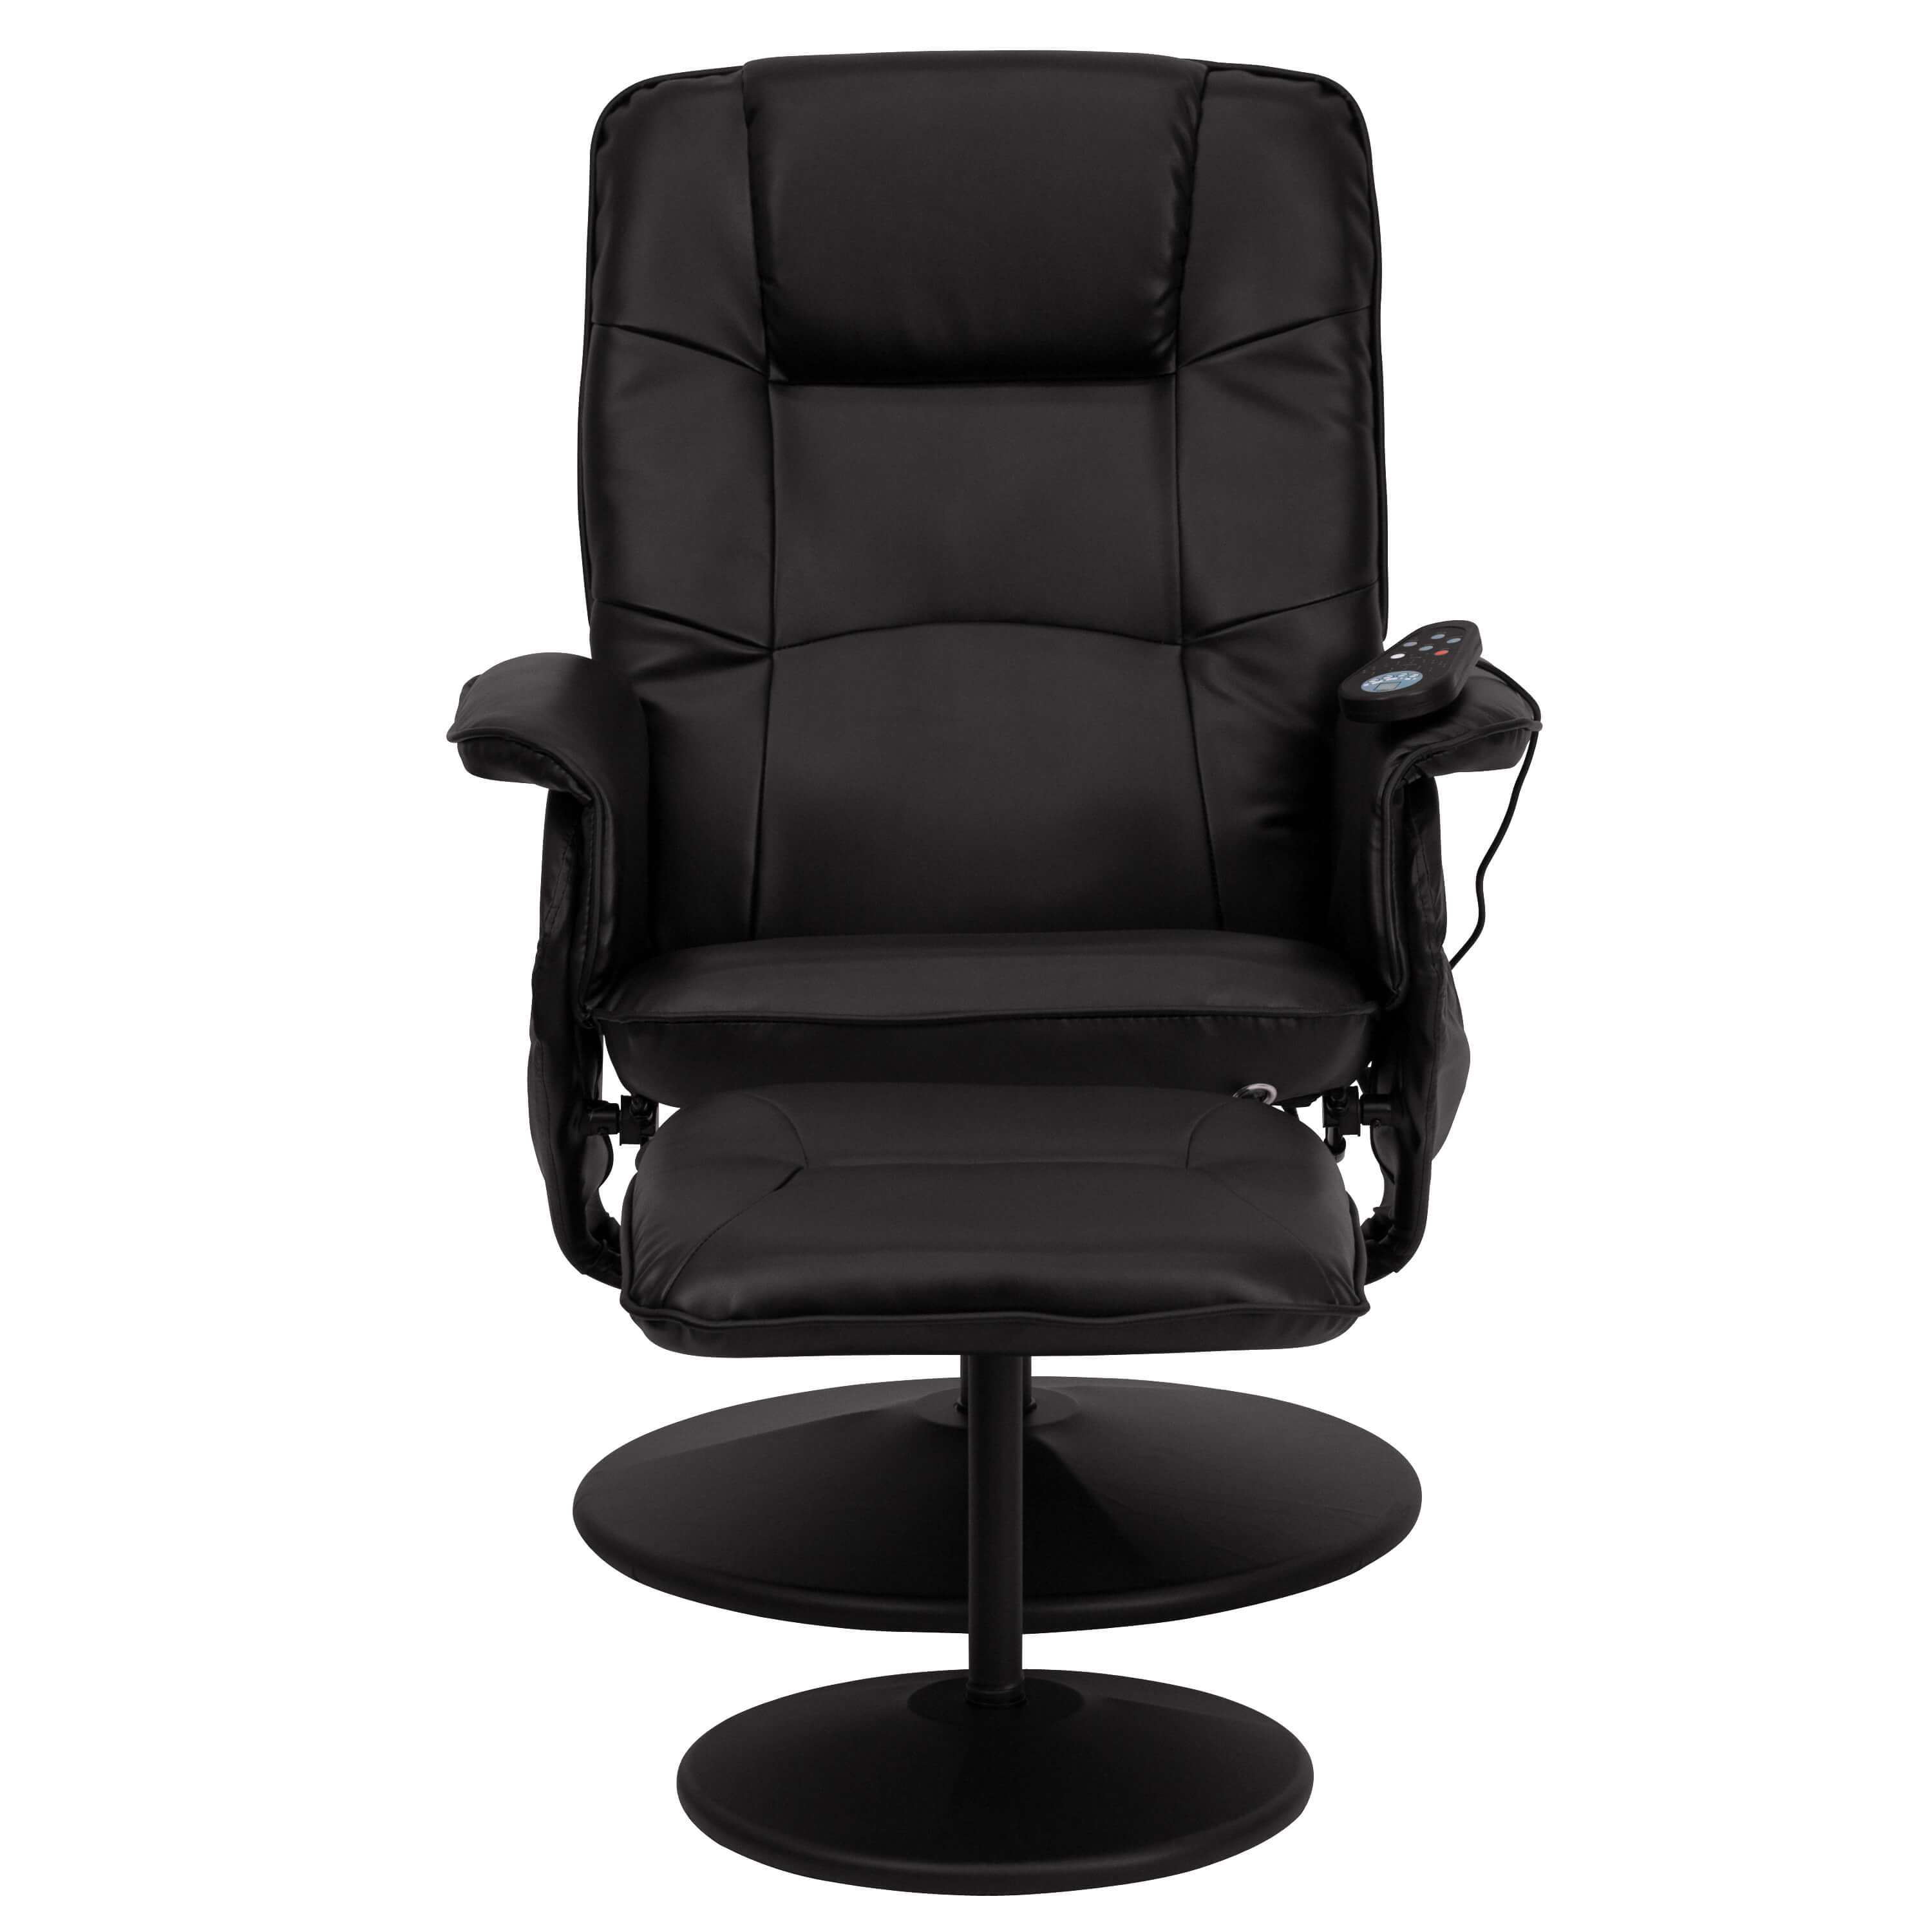 Recliner chair with massage front view